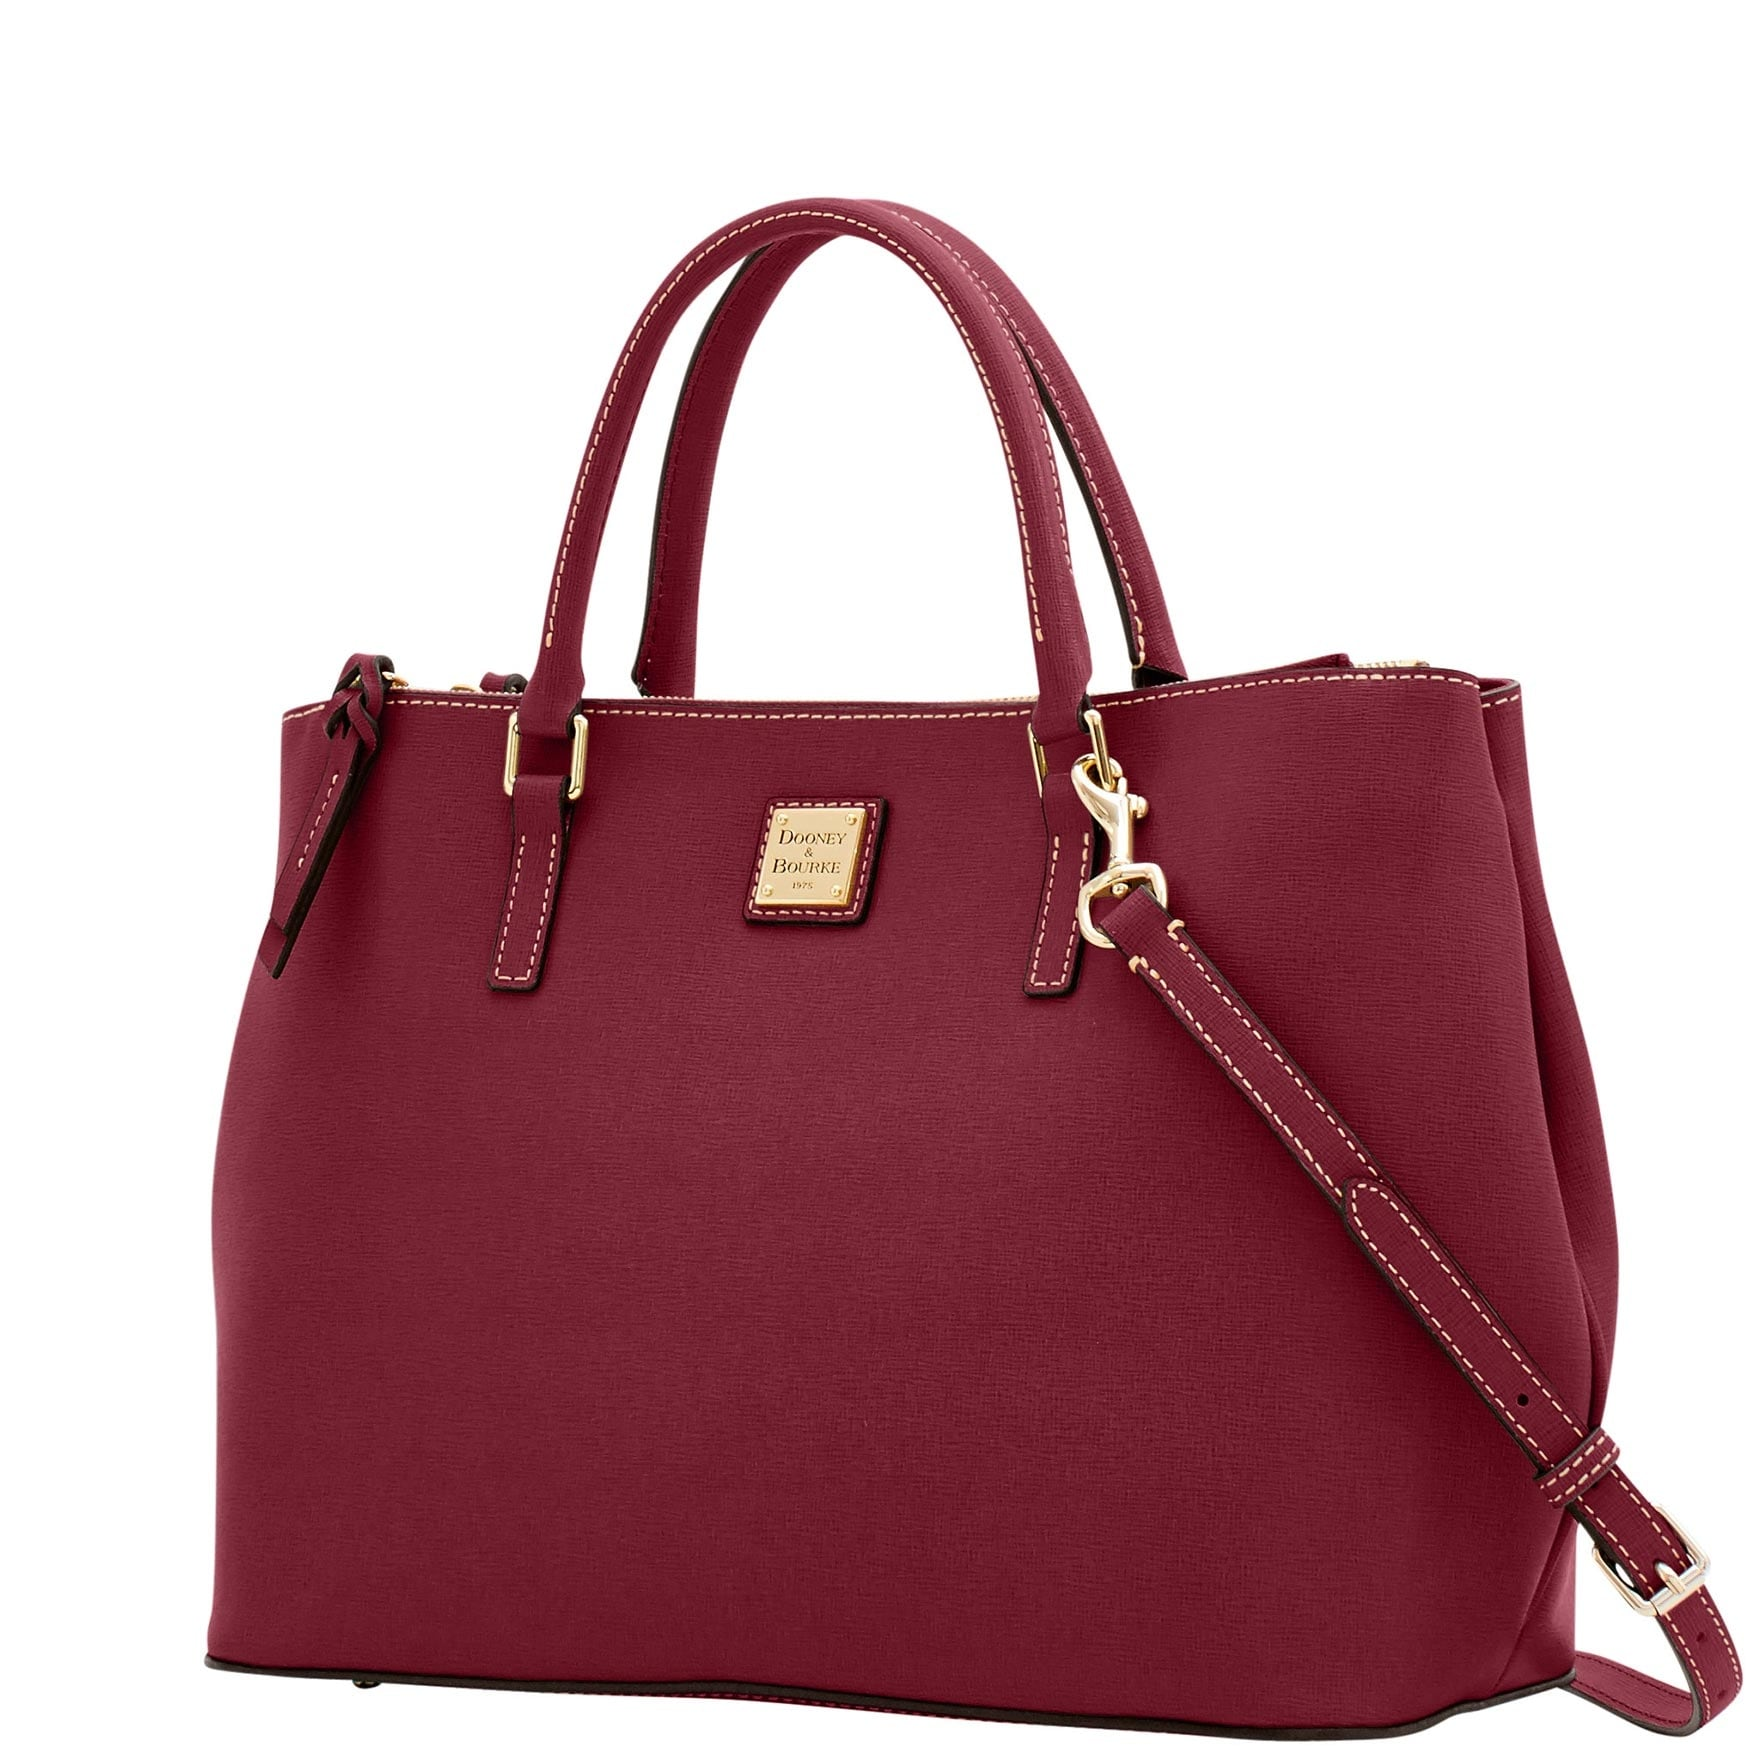 f1fd82a6e Shop Dooney   Bourke Saffiano Willa Zip Satchel (Introduced by Dooney    Bourke at  298 in Feb 2018) - Free Shipping Today - Overstock - 20004120